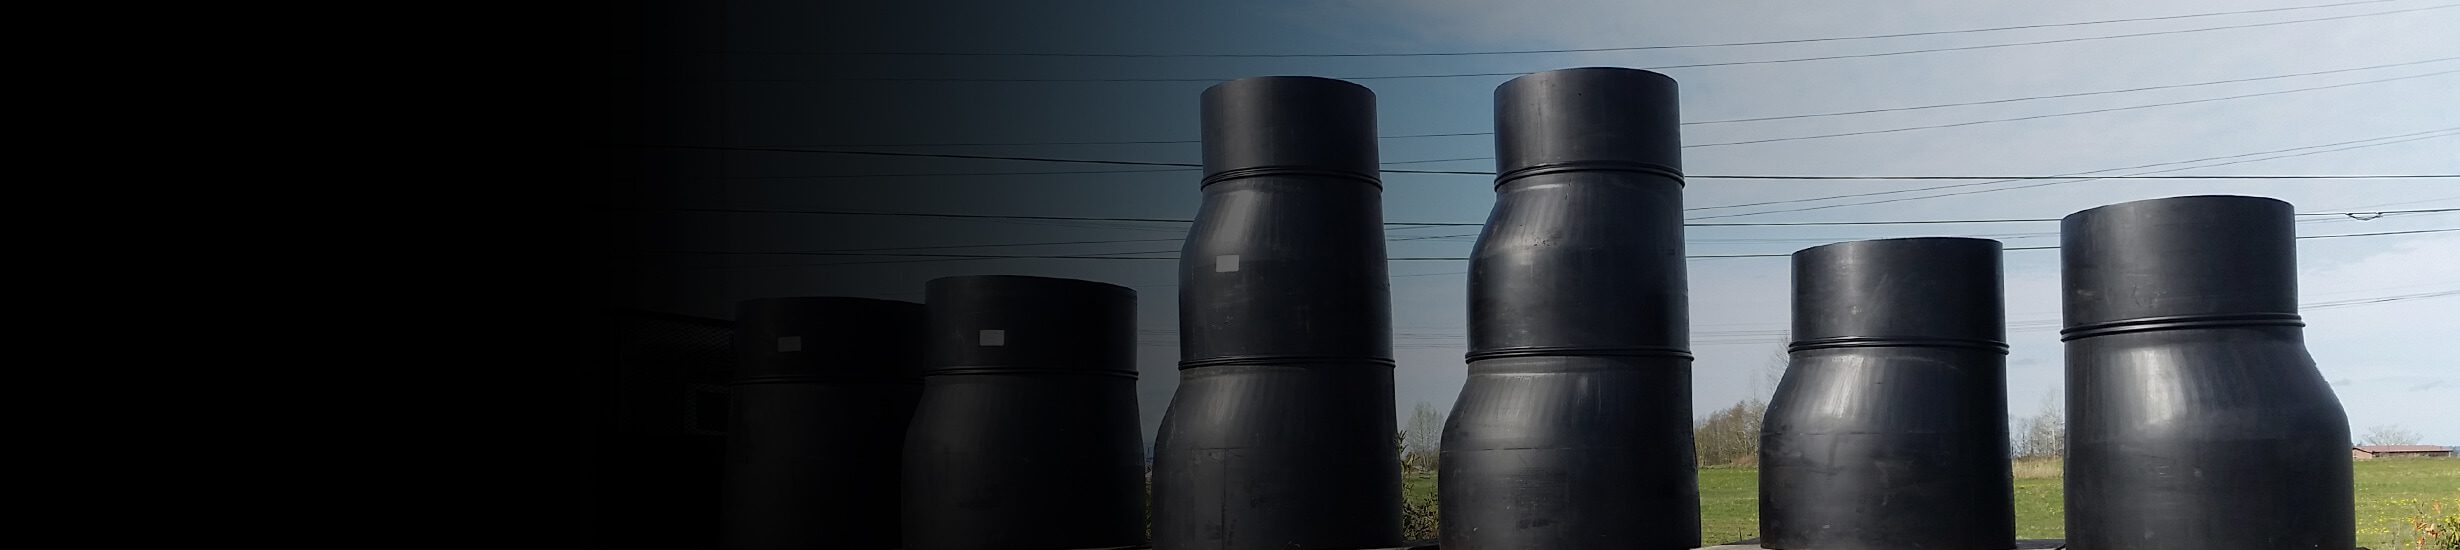 Large Swedge Reducers travelling on the back of a semi truck